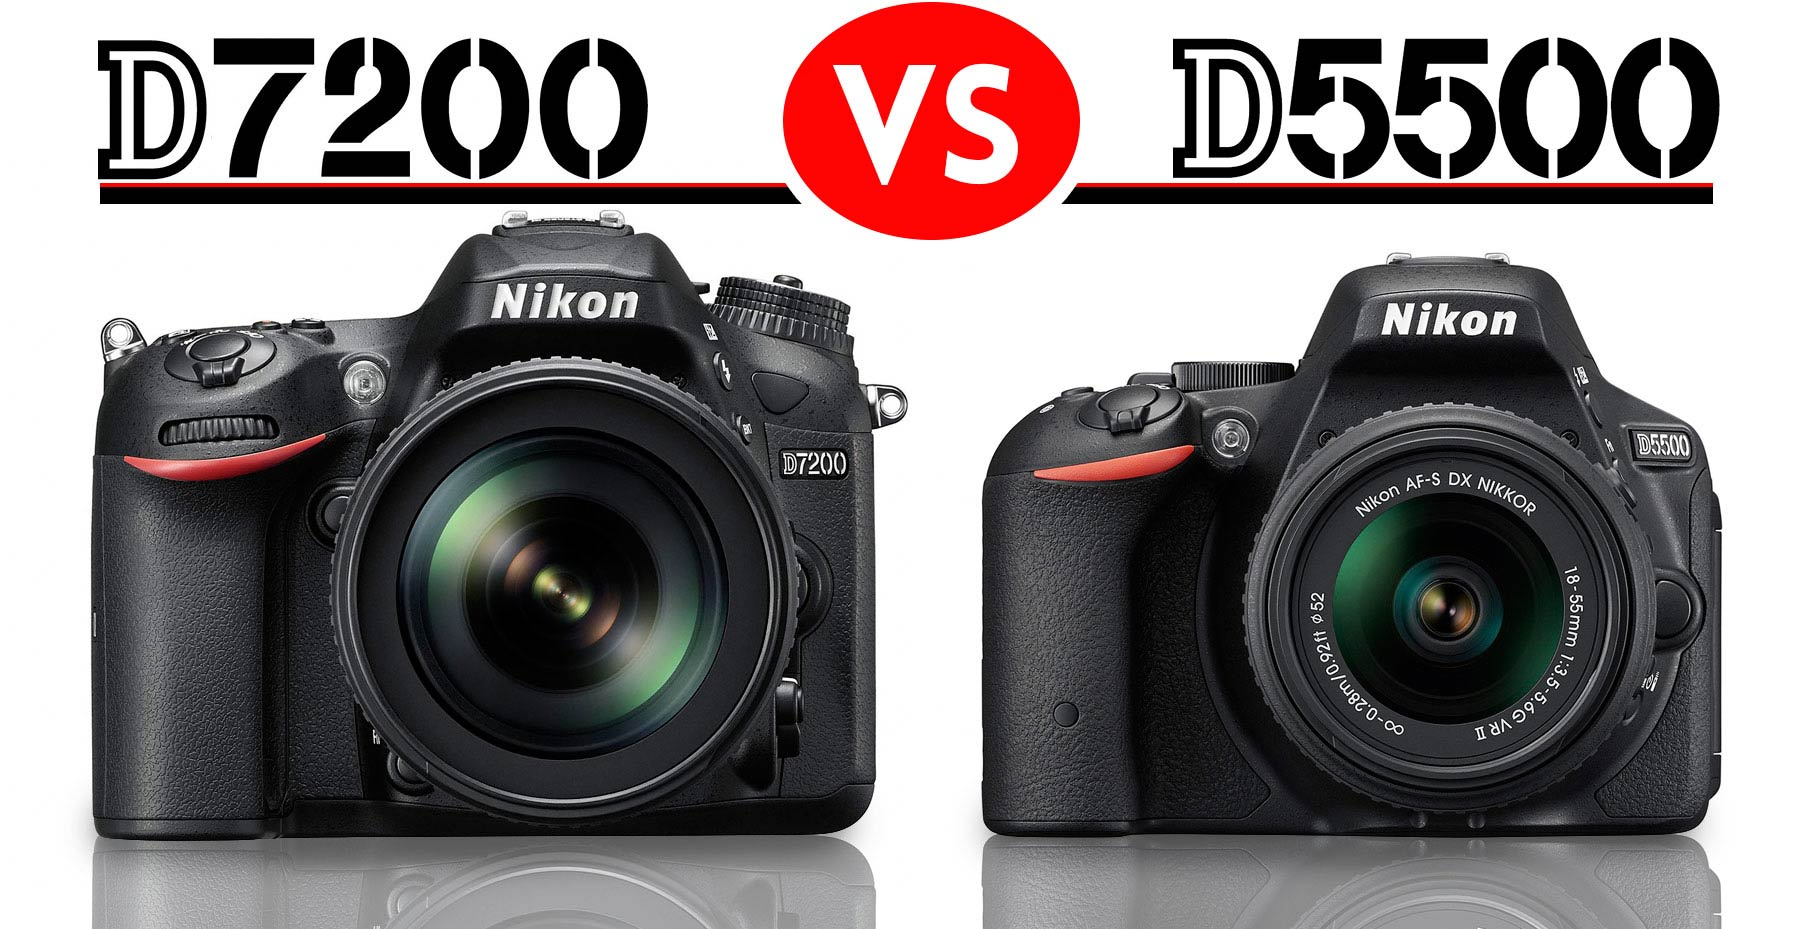 Nikon D5500 vs D7200: Which Should You Buy? – Light And Matter